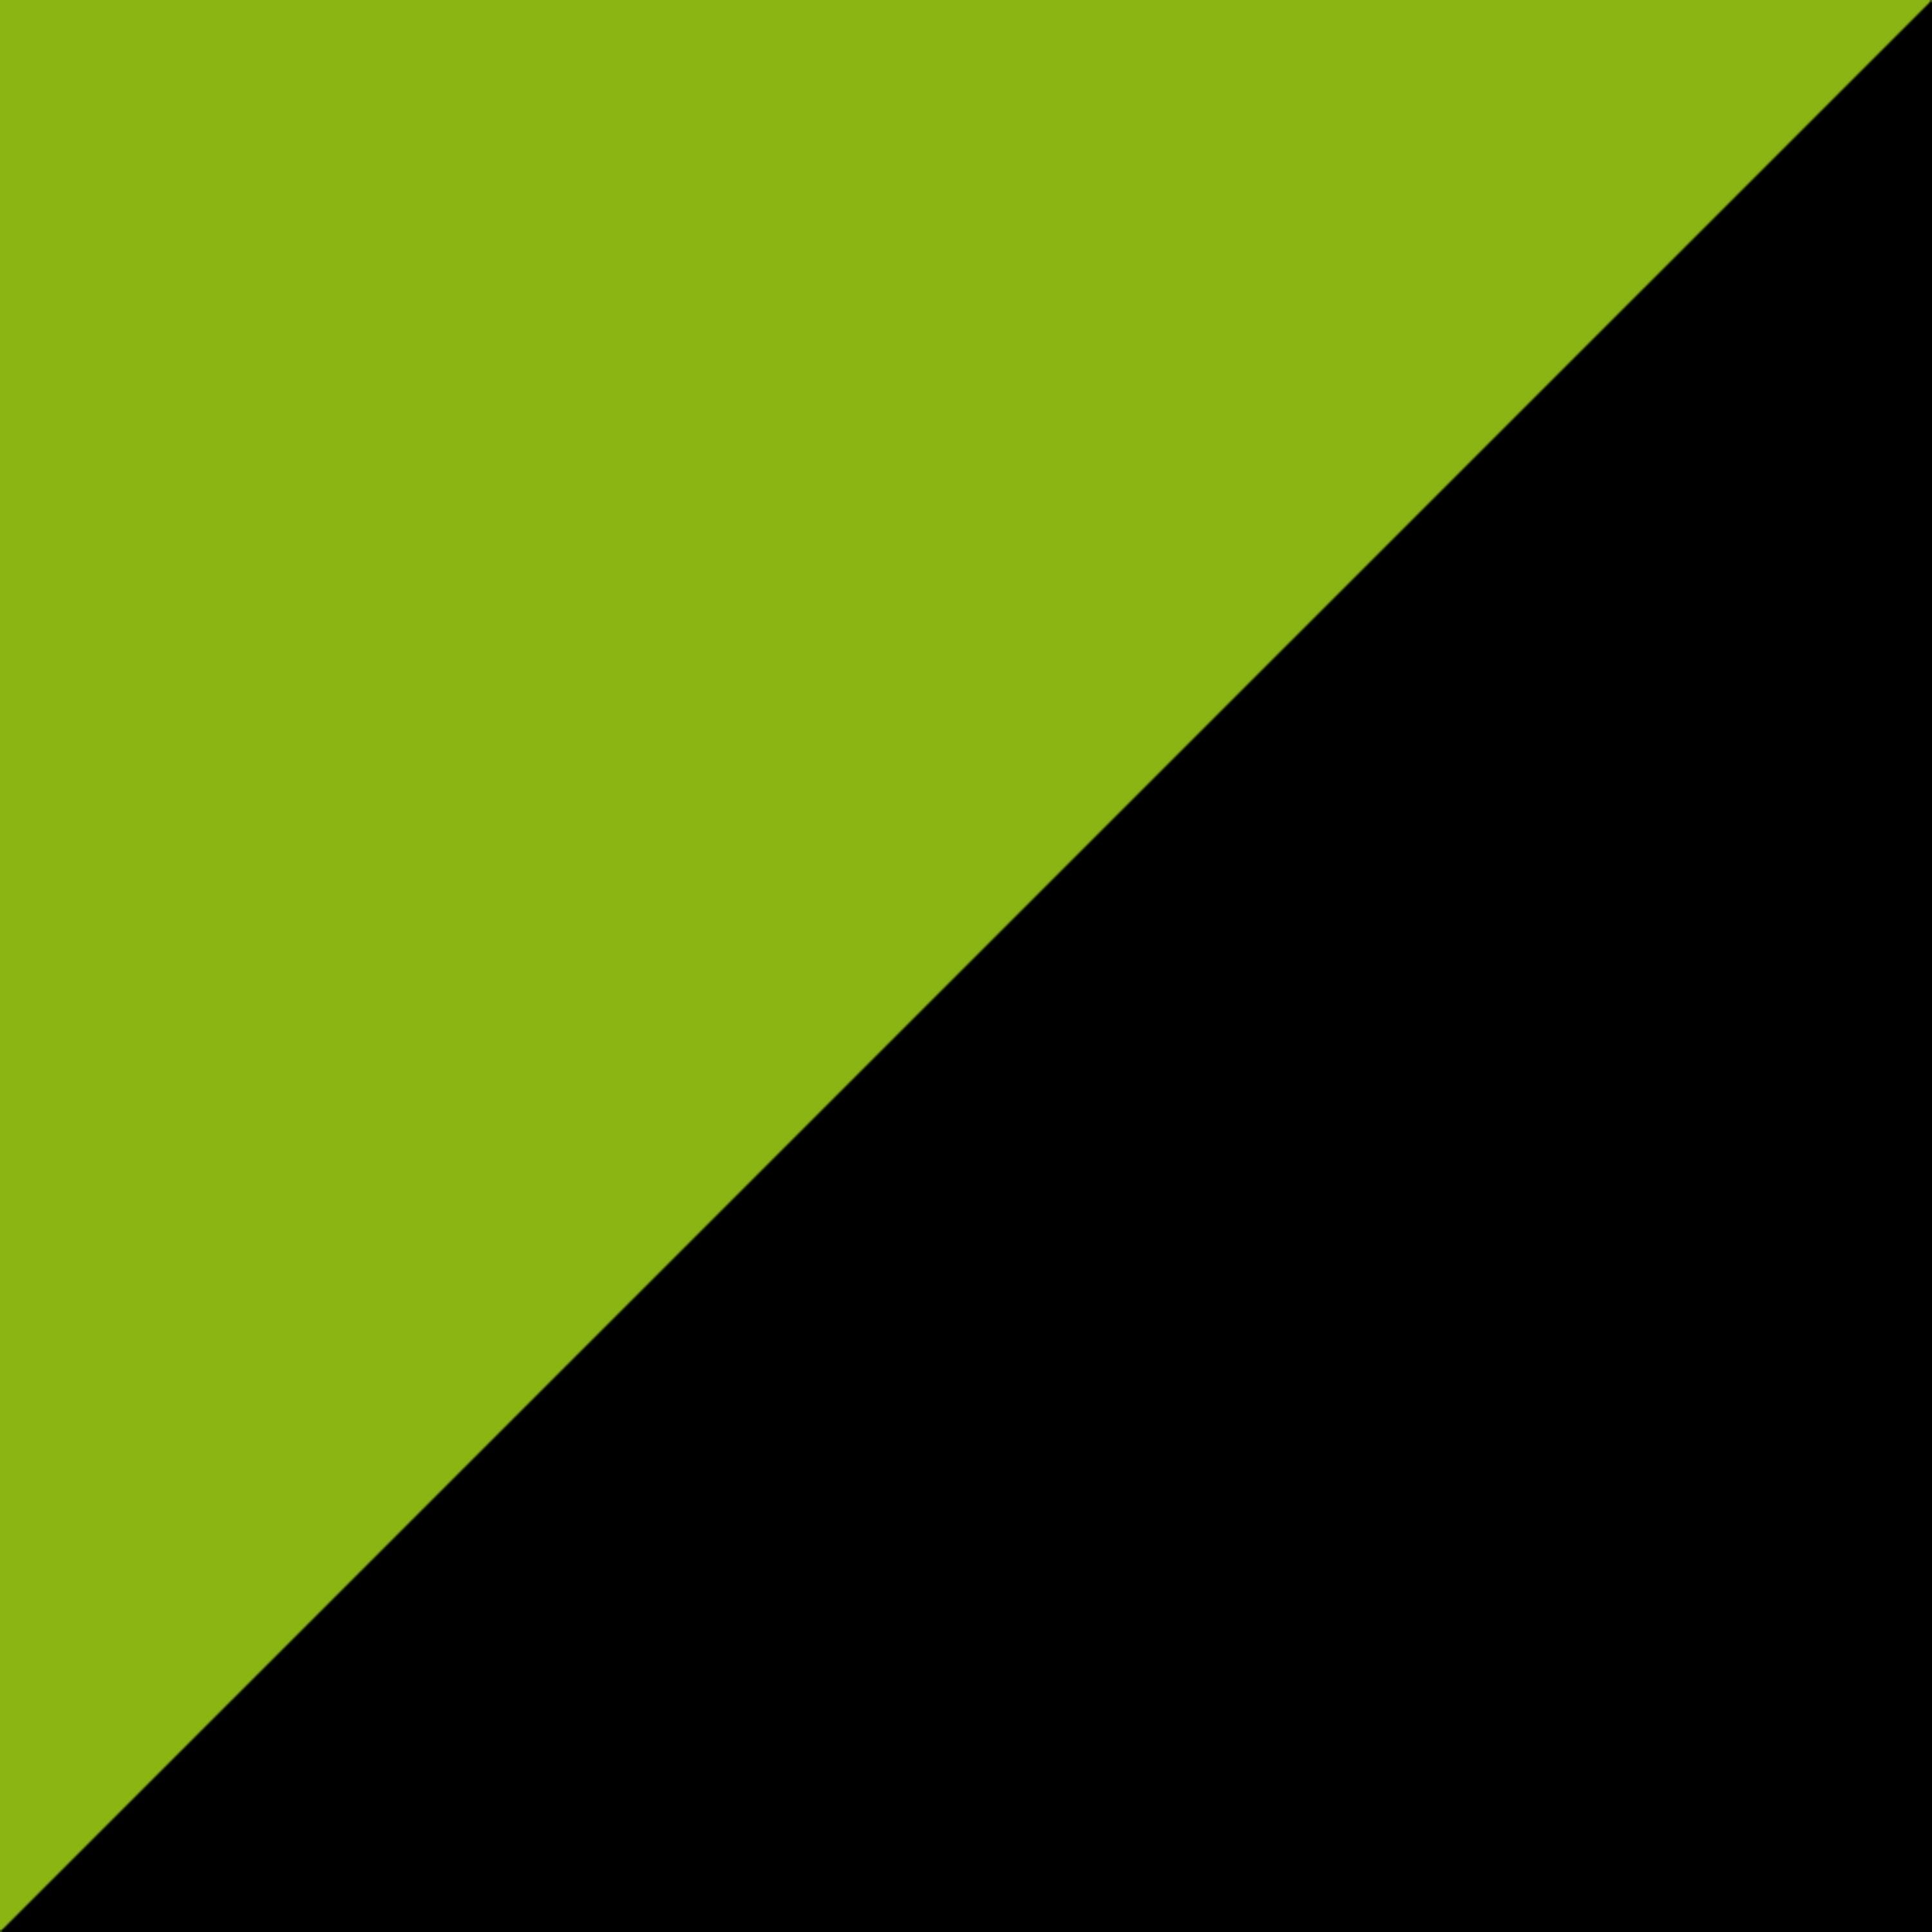 Colors: GB Lime Green & Black